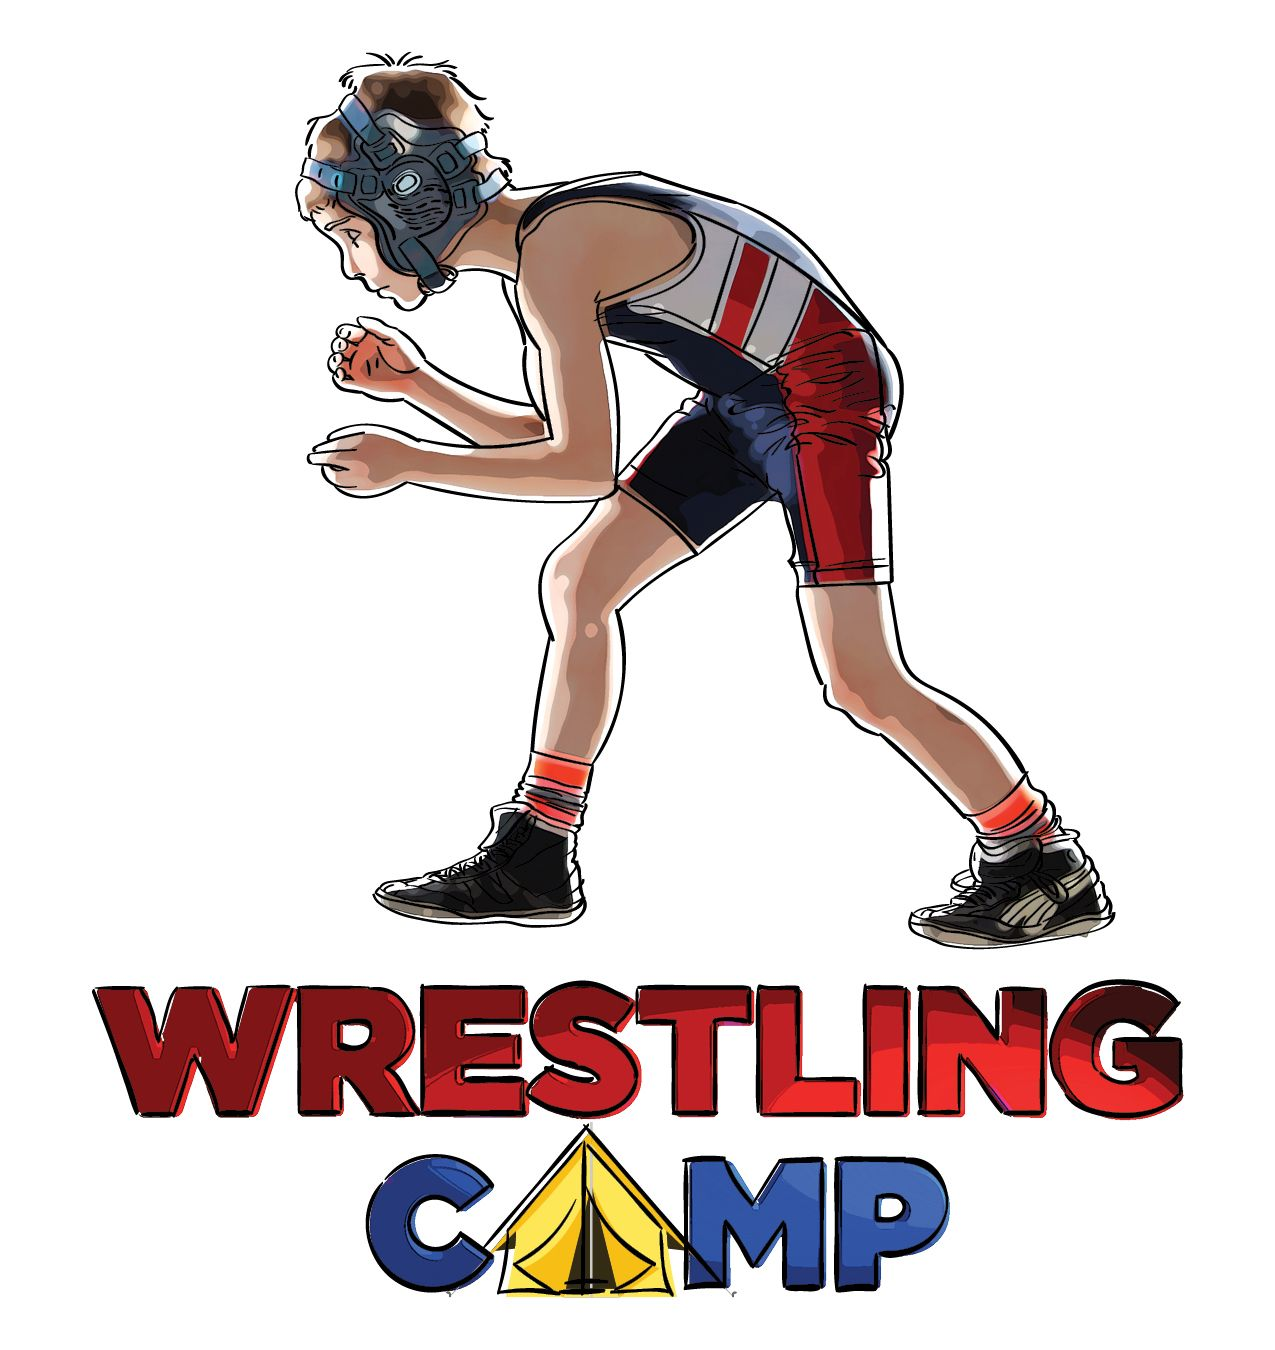 Learn The Fundamentals And Skill Of Wrestling At Foothills Activity Center In Fort Collins From Pins Lifts And Escapes Youth Sports Sports Programme Sports